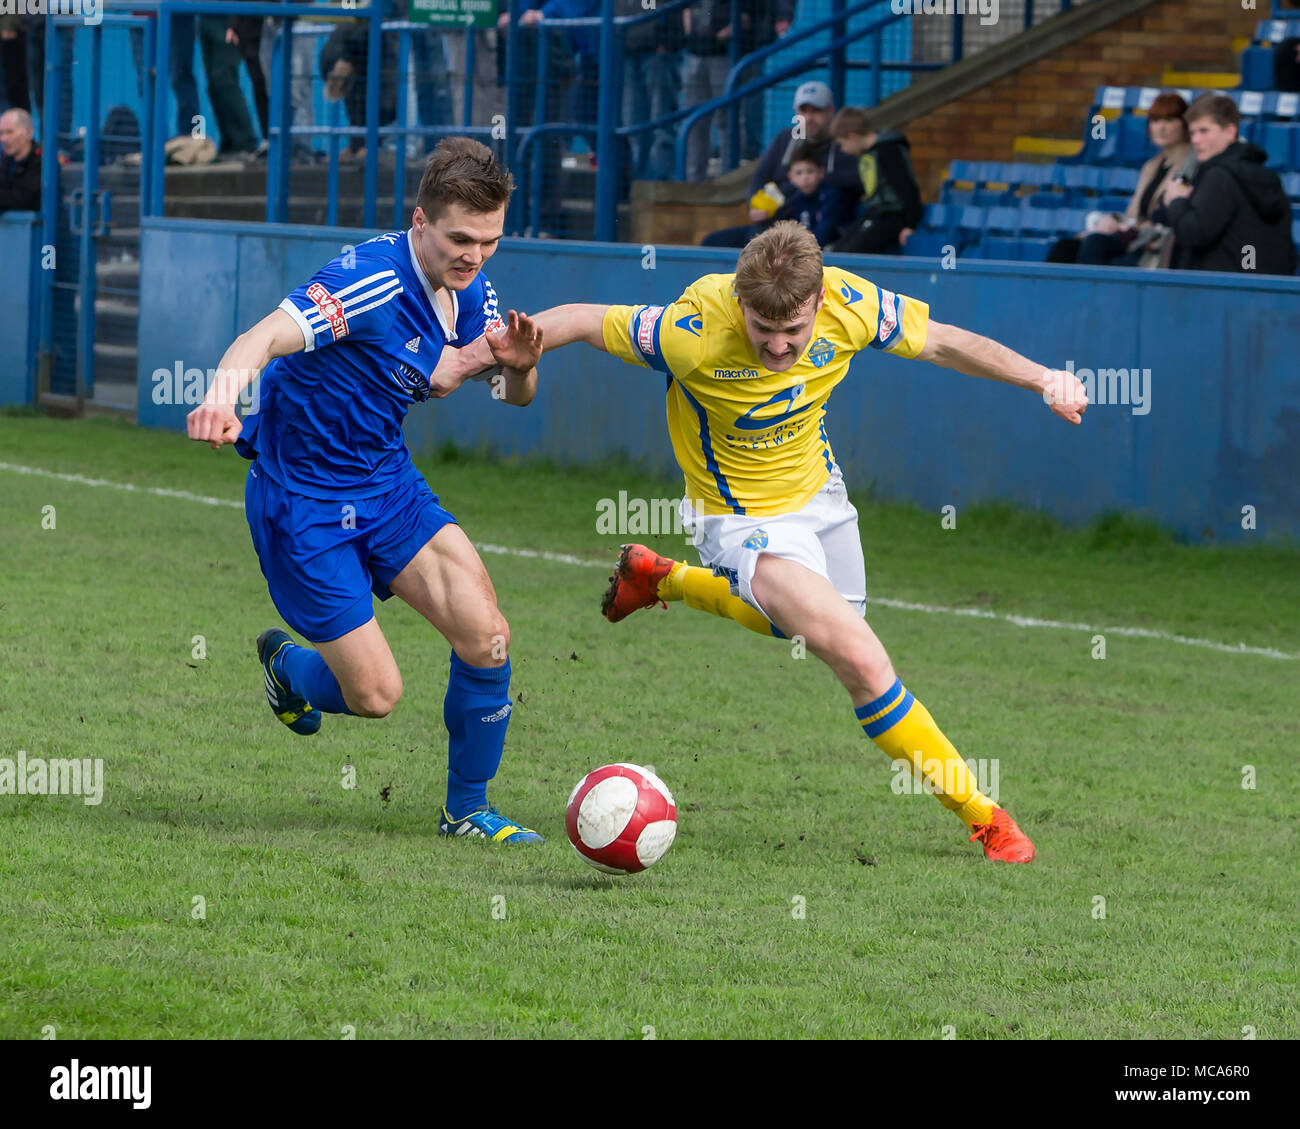 Farsley, UK, 14 April 2018. Warrington Town's Will Hayhurst chases the ball against Farsley Celtic during Warrington's 2-0 win on Saturday 14 April 2018 in the top of the table clash near the end of the season Credit: John Hopkins/Alamy Live News Credit: John Hopkins/Alamy Live News - Stock Image